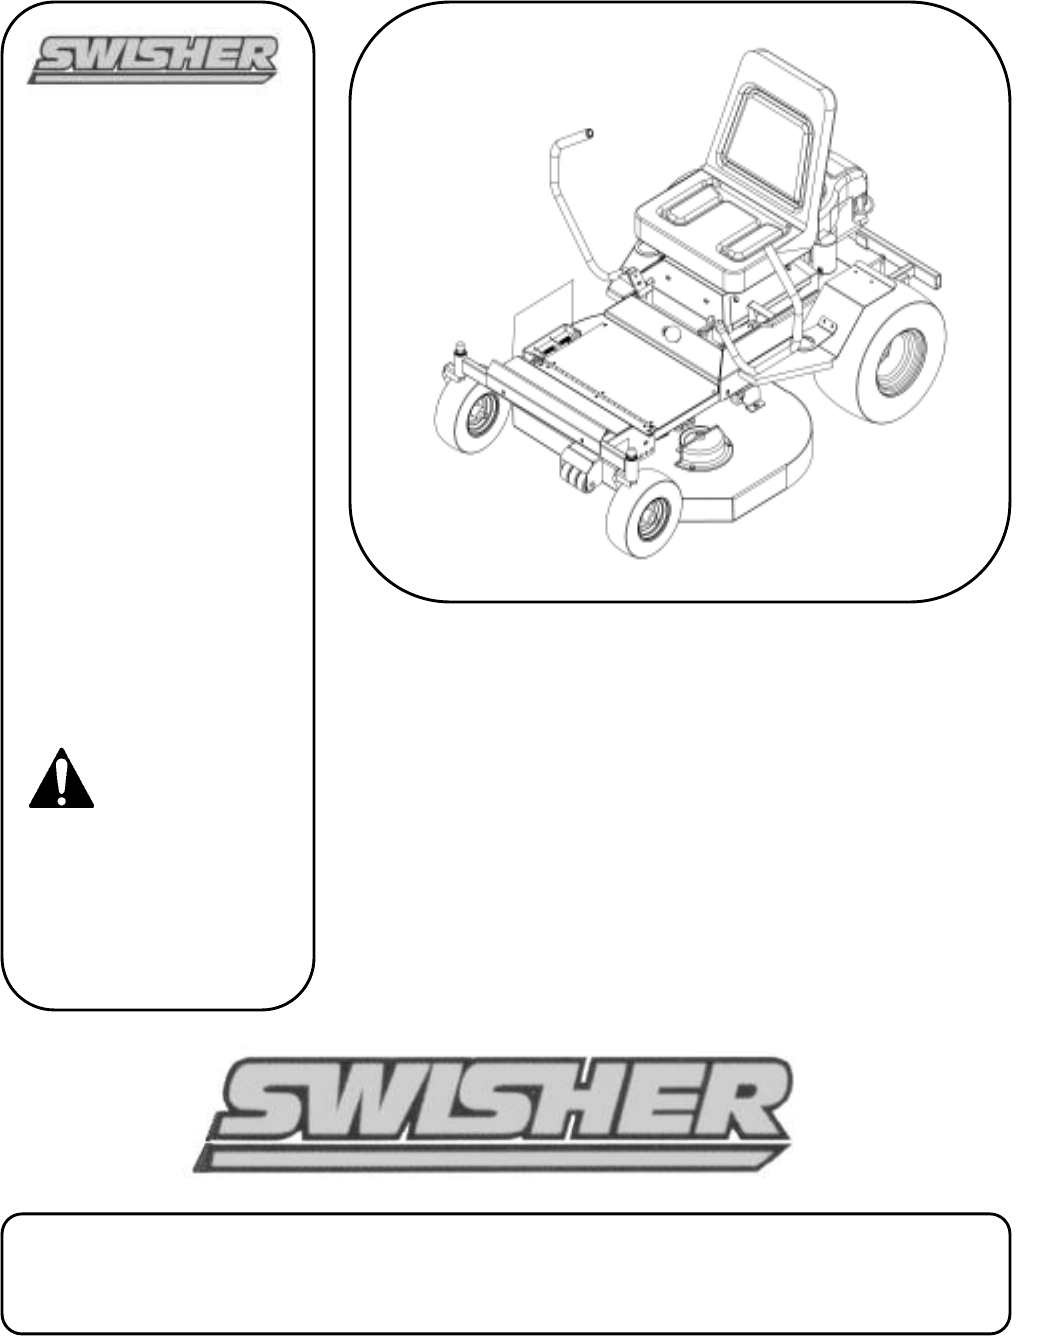 Swisher Lawn Mower ZT2350 User Guide | ManualsOnline.com on swisher trailmower t14560a wiring-diagram, lawn mower belt routing diagram, swisher mower battery, swisher 60 trail mower, swisher mower parts list, swisher trail mower belt replacement, swisher mower belt routing, ignition system wiring diagram, swisher mower coil, swisher parts diagram, brute wiring diagram, simplicity wiring diagram, swisher ride king mower parts, swisher mower parts catalog, swisher pull behind mower belts, swisher mower accessories, toro wiring diagram, swisher mower manual, swisher mower wheels, zero turn mower diagram,